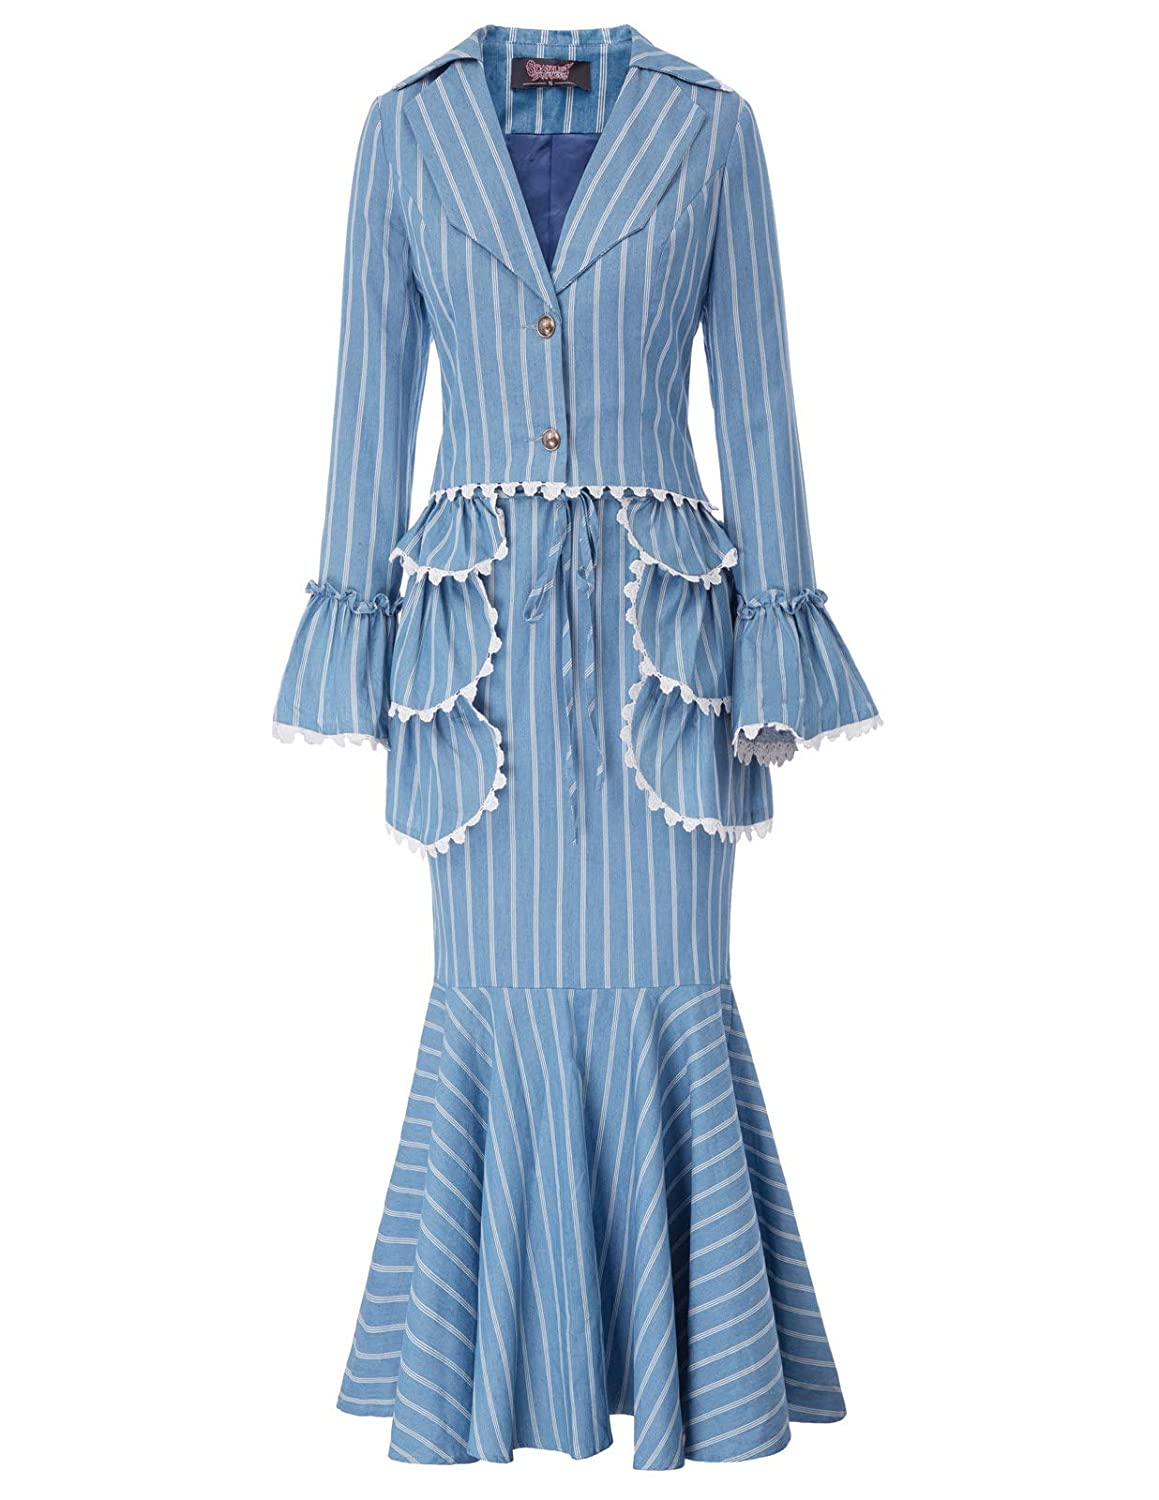 1900 -1910s Edwardian Fashion, Clothing & Costumes Women 3pcs Set Vintage Victorian Costume Edwardian Suit Coat+Skirt+Apron $59.99 AT vintagedancer.com